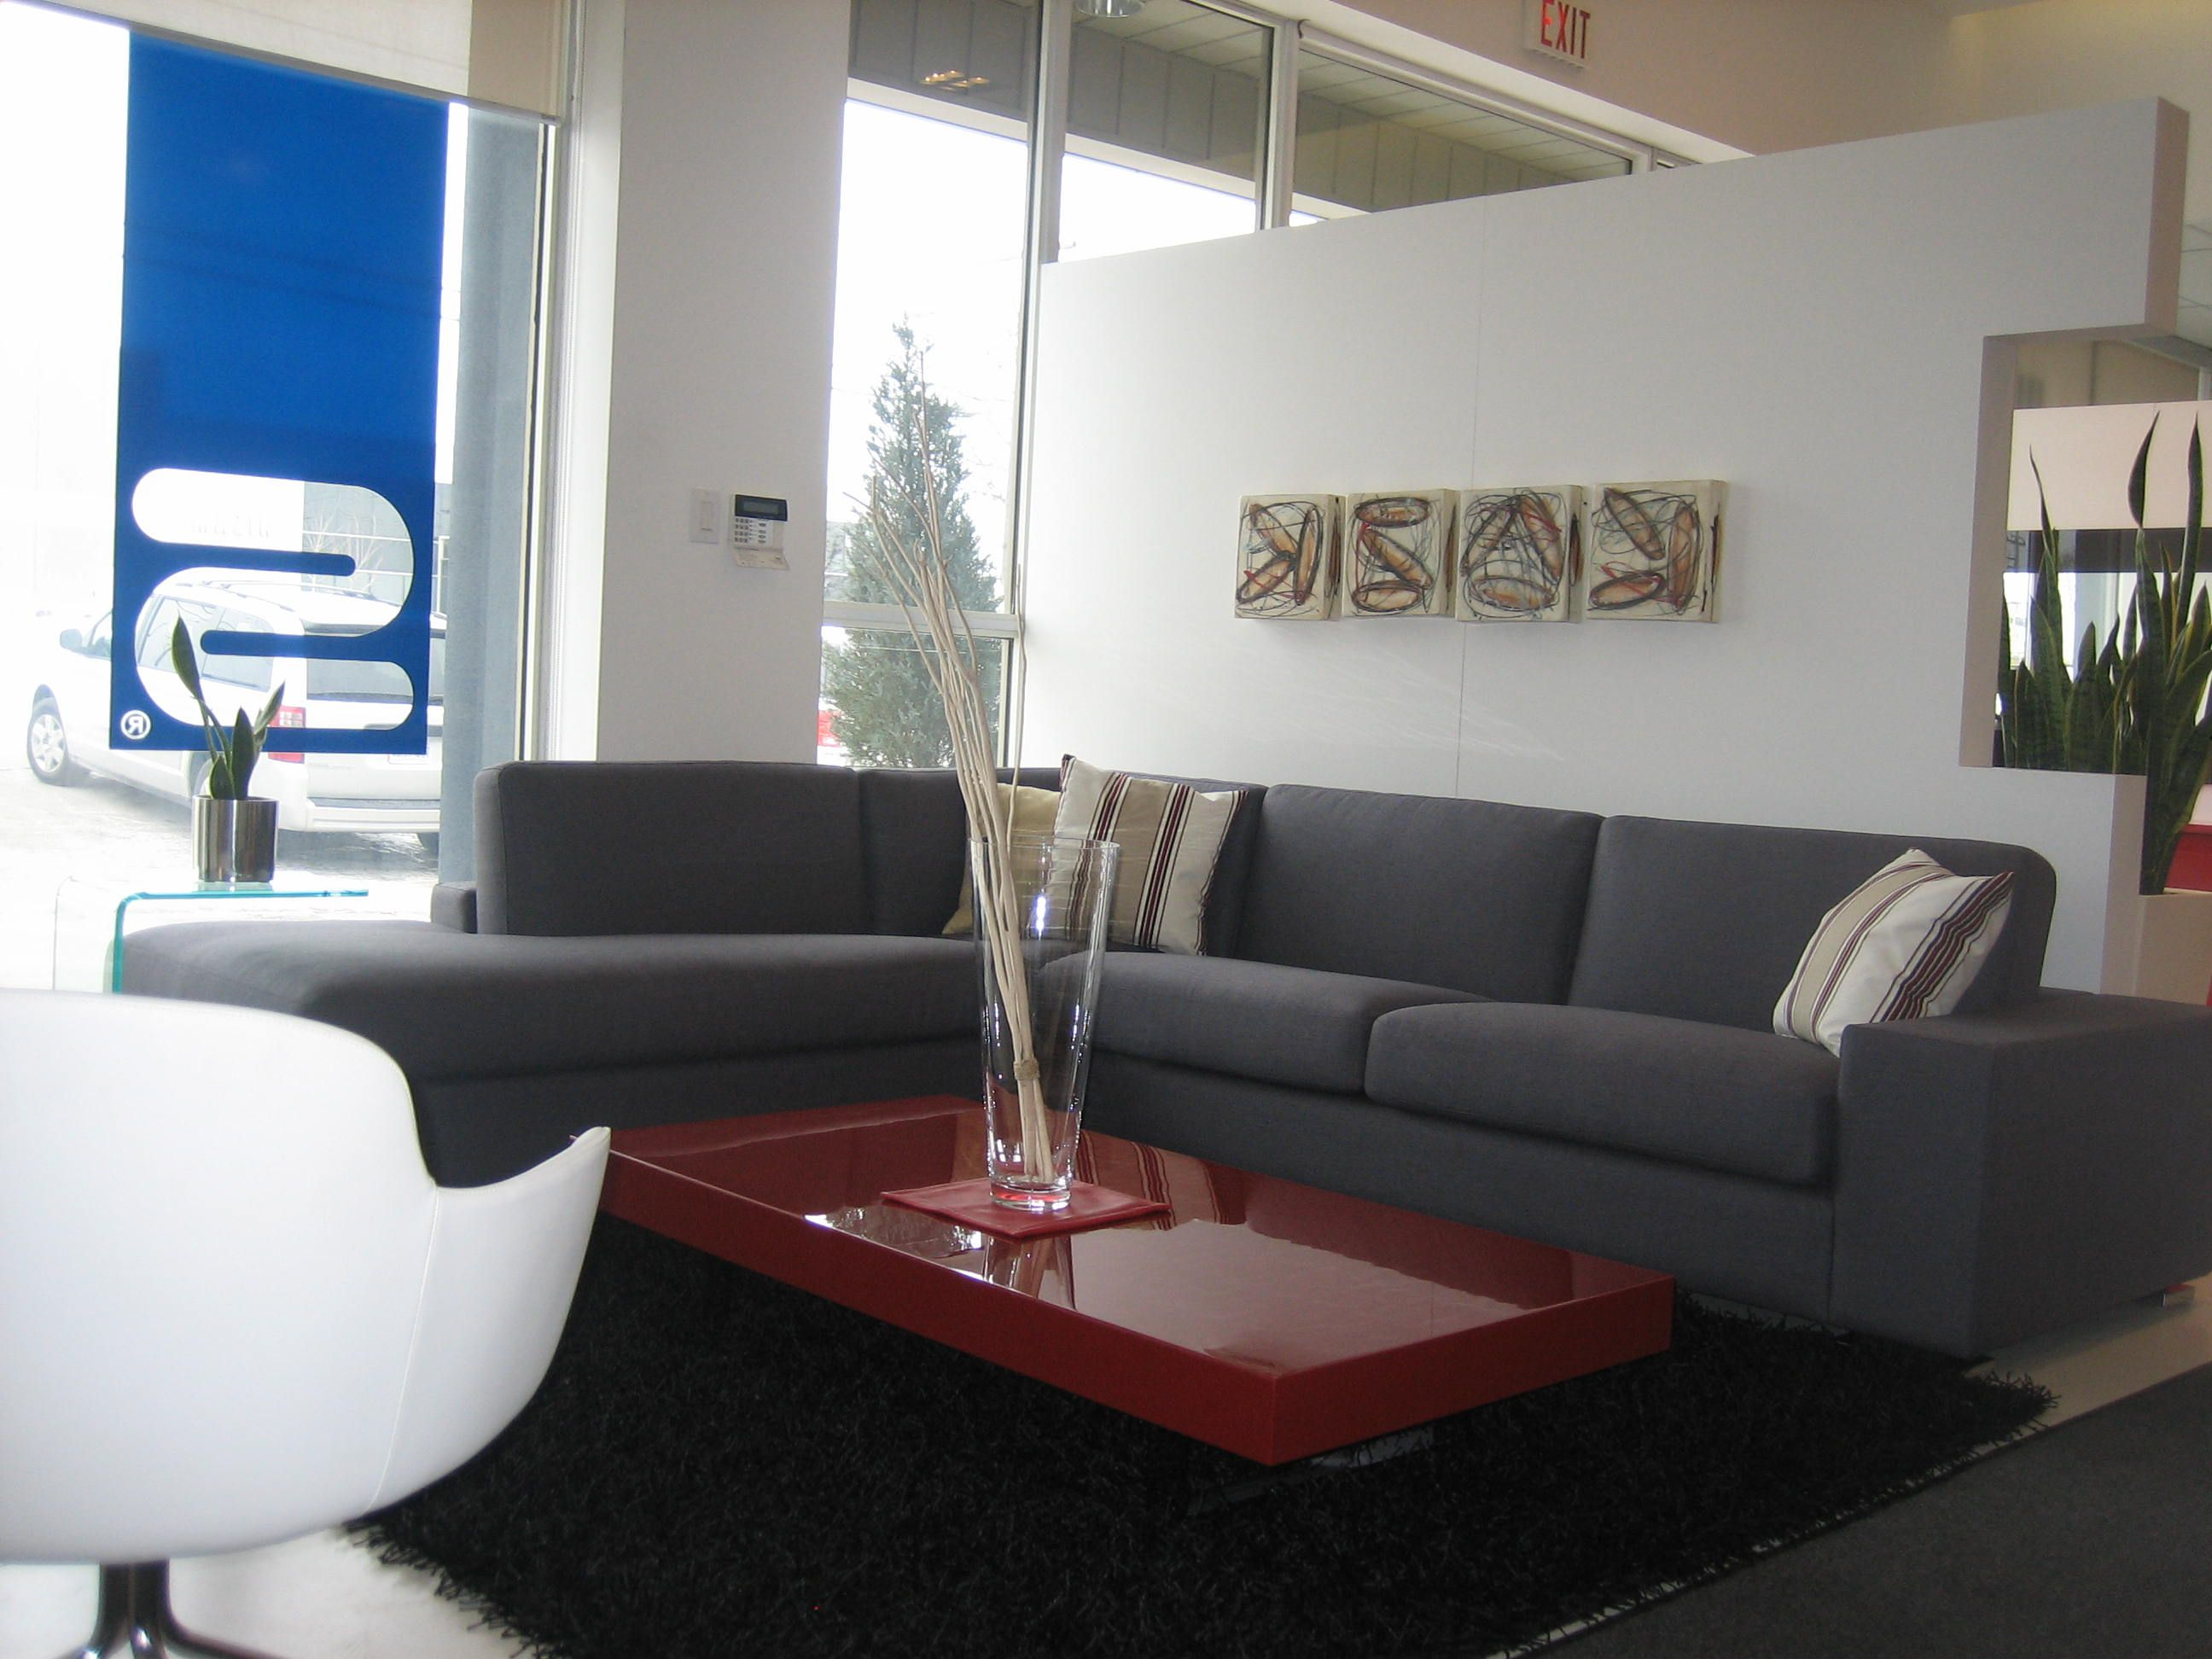 Mephisto sectional in grey available in your choice of leather or fabric made in canada by selene furniture